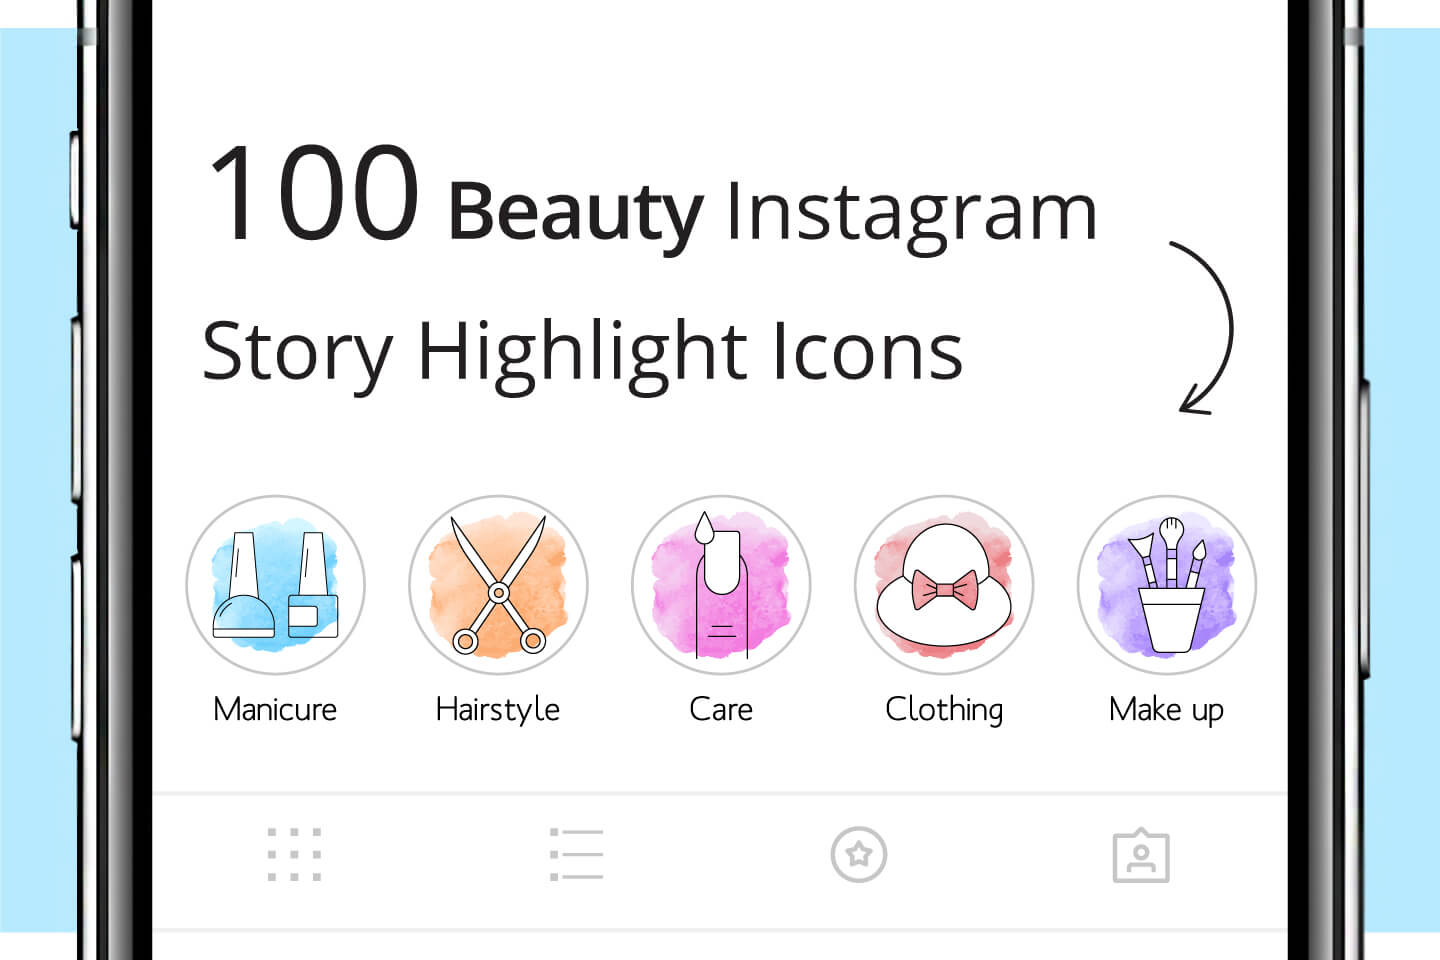 100 Beauty Instagram Story Highlight Icons